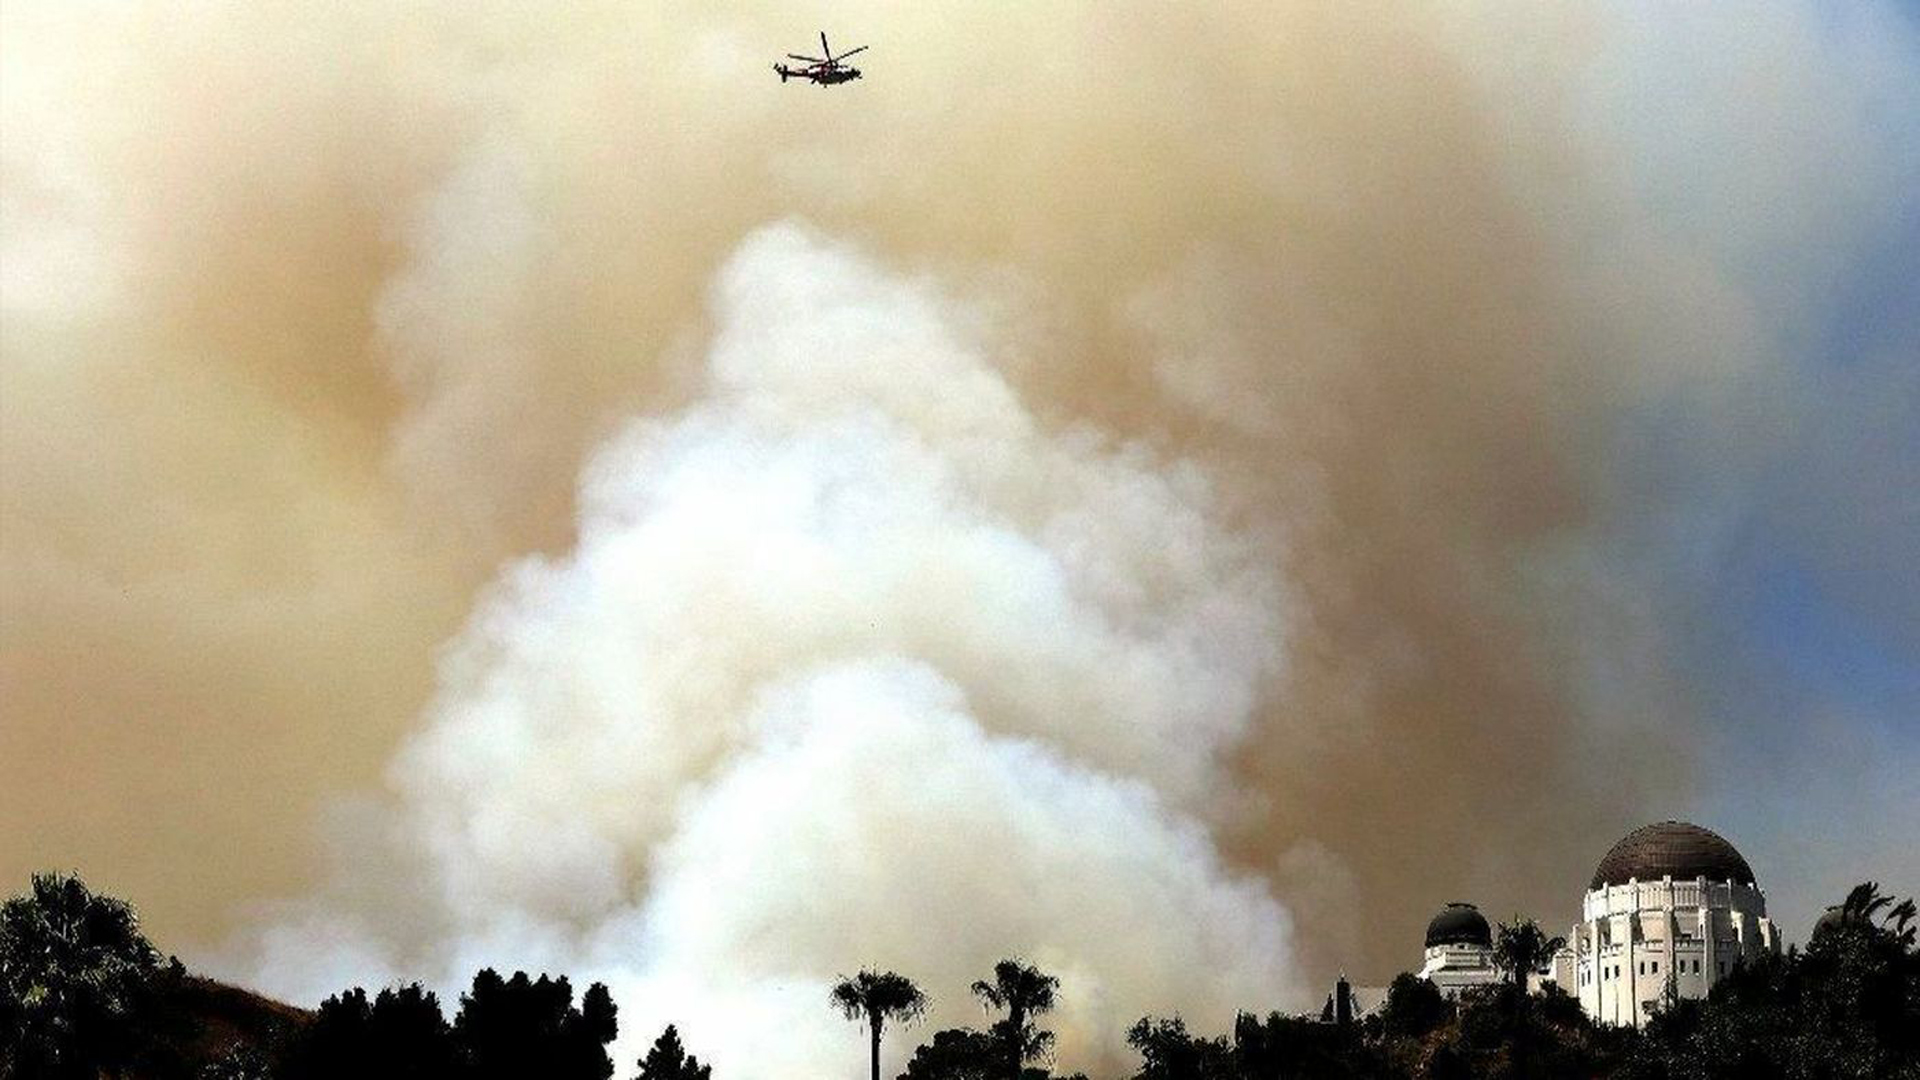 Smoke billows from a brush fire in Griffith Park near Griffith Observatory on July 10, 2018. (Credit: Christina House / Los Angeles Times)